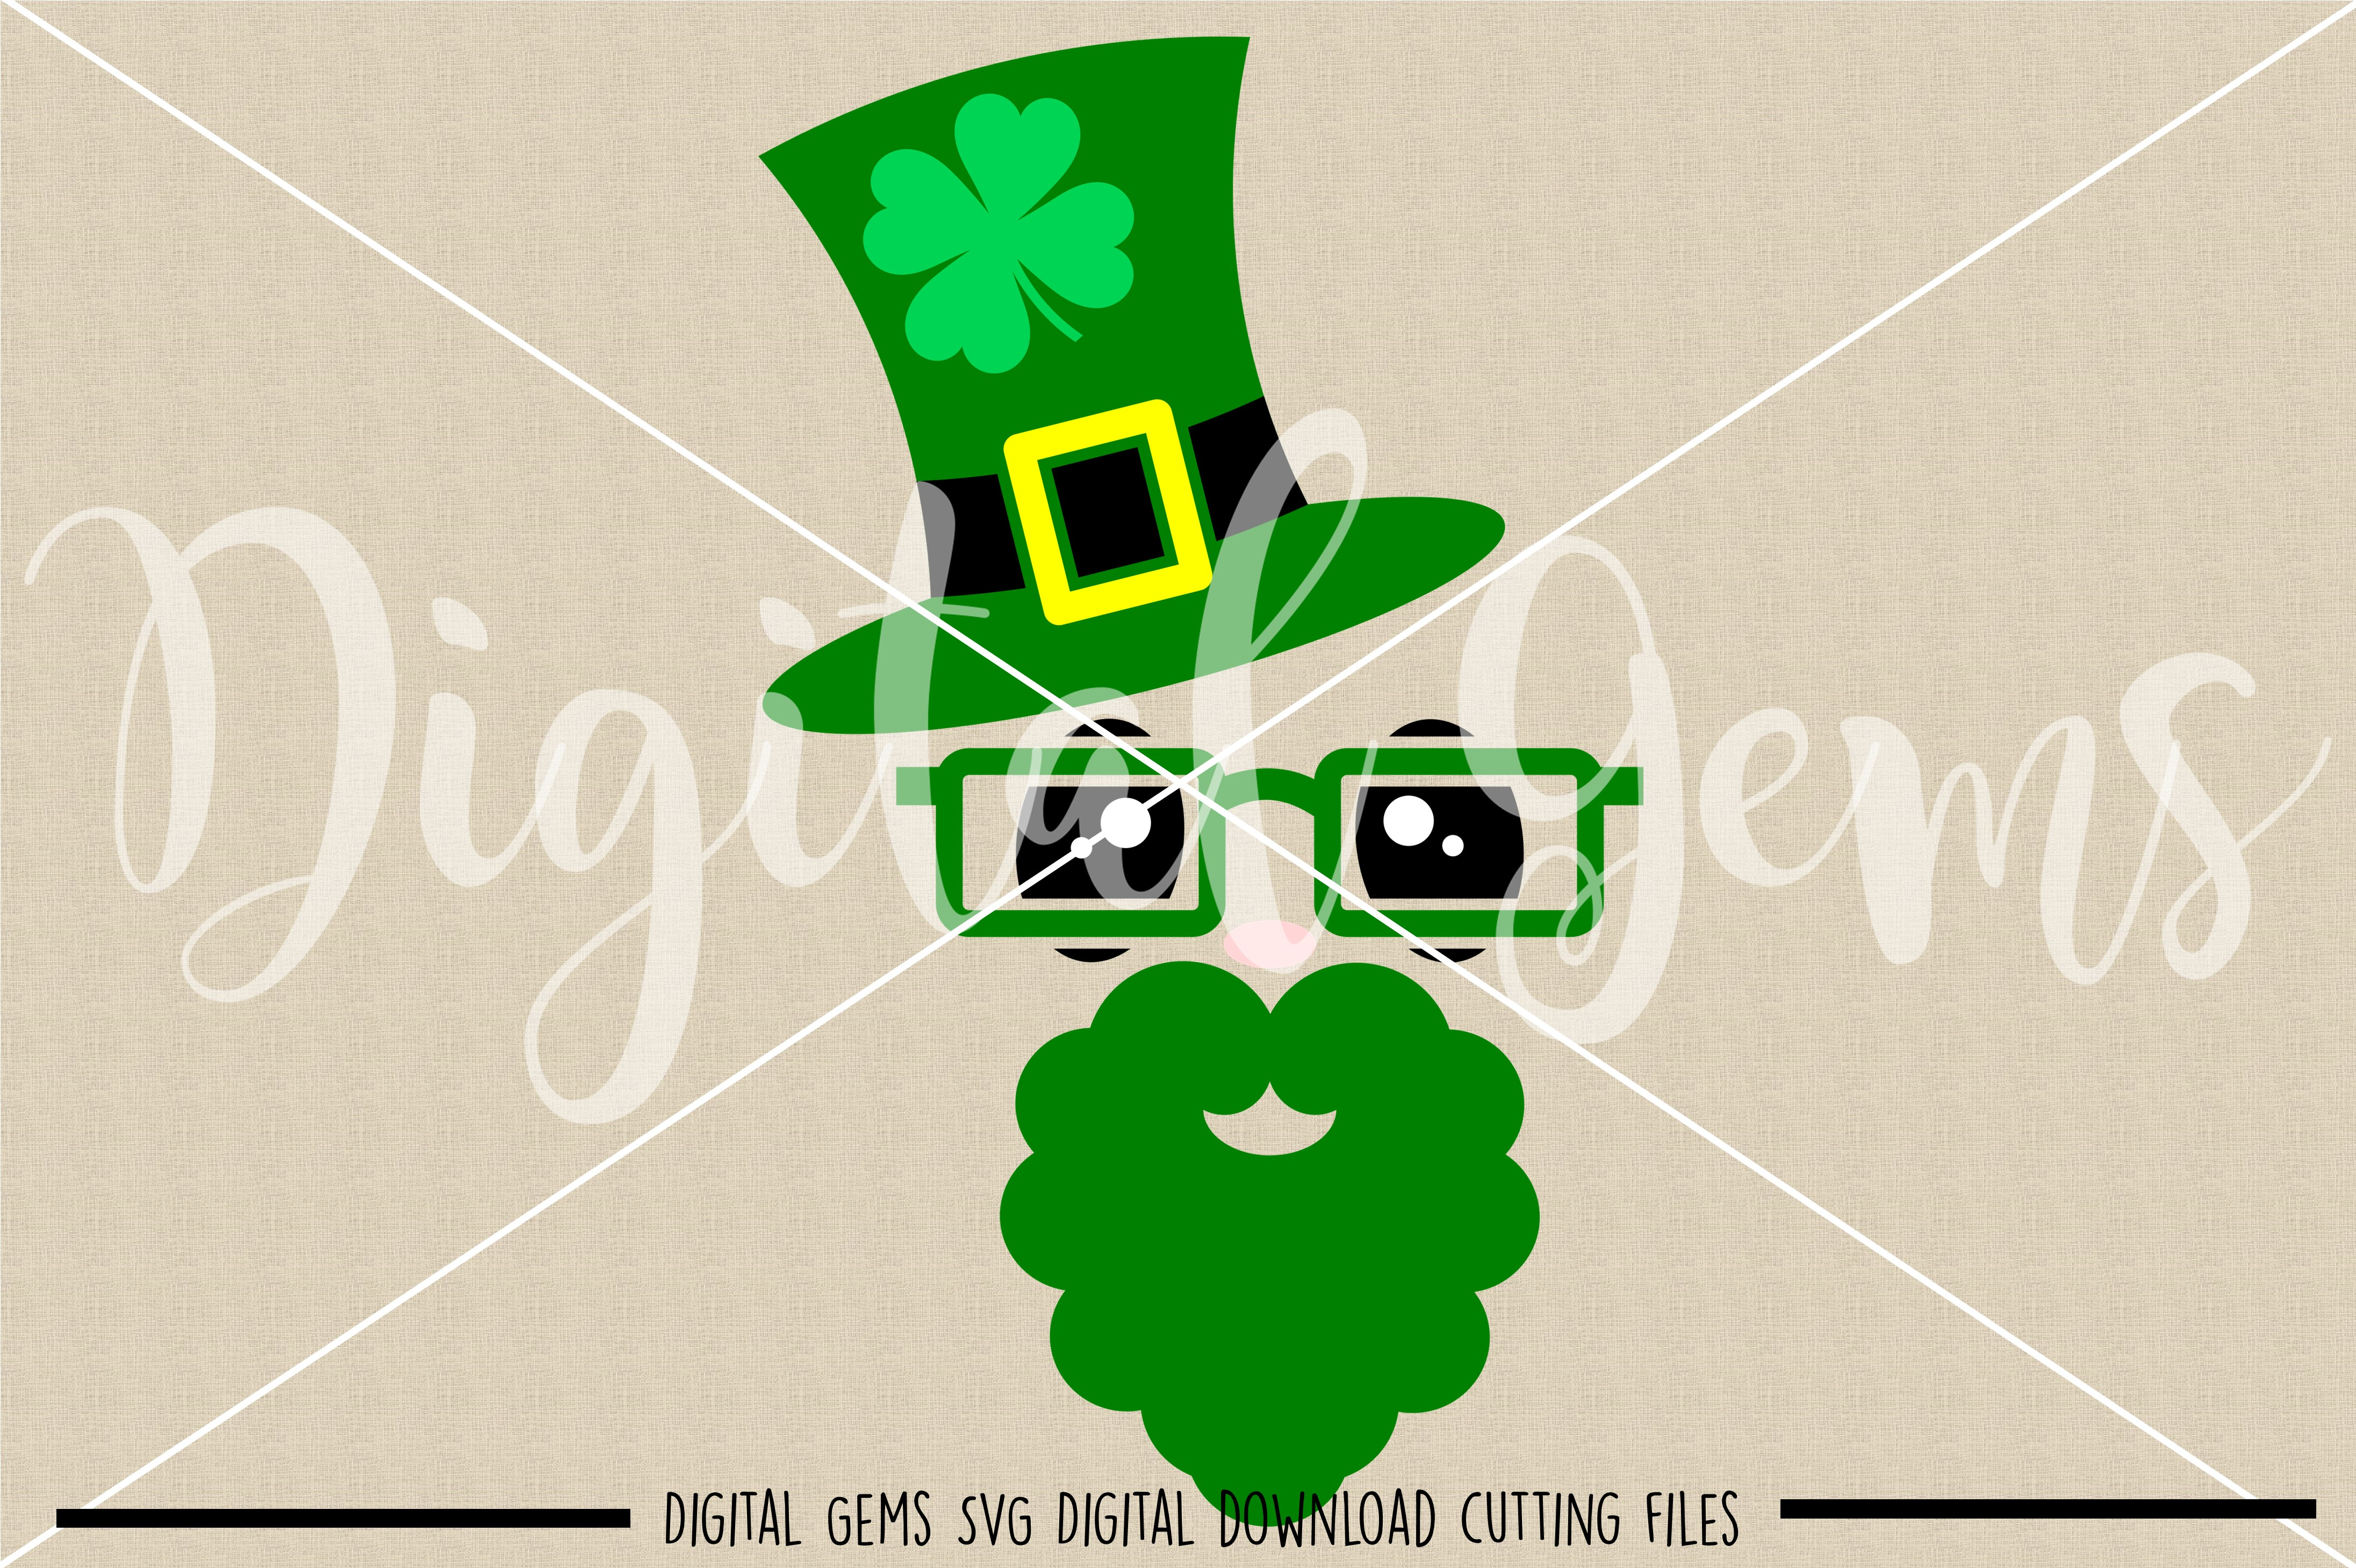 St Patrick's Day leprechaun SVG / PNG / EPS / DXF Files example image 2